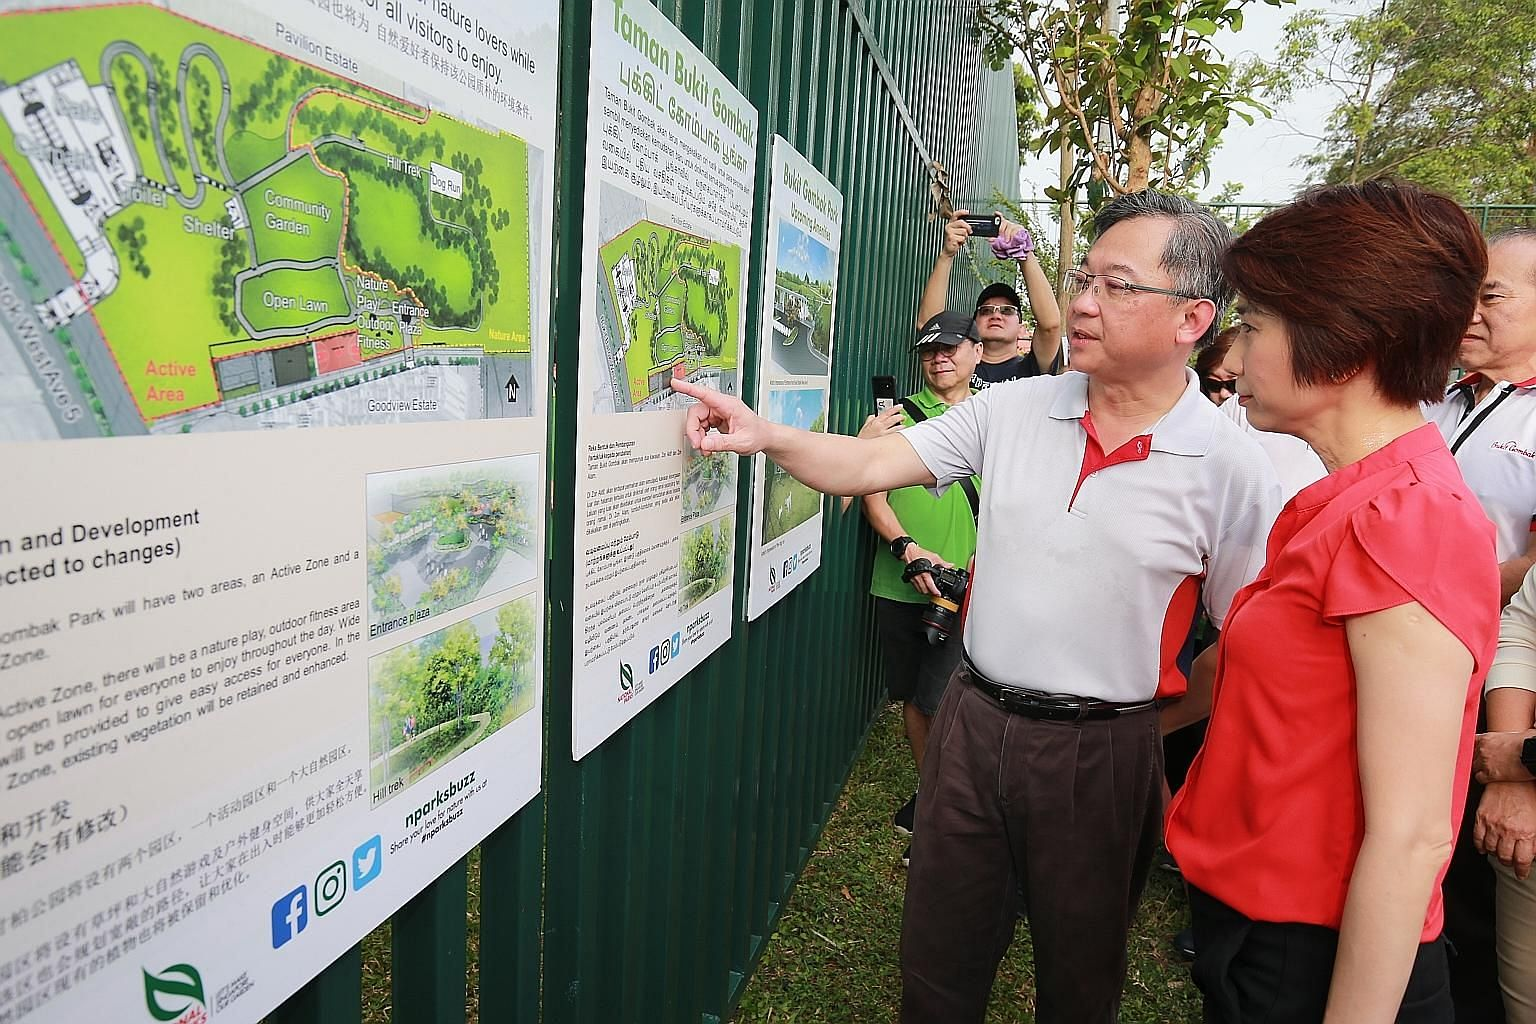 Health Minister Gan Kim Yong and Senior Parliamentary Secretary for Education and Manpower Low Yen Ling looking at a map of the upcoming Bukit Gombak Park, which will have a 400m walking trail and features such as a community garden and dog run.